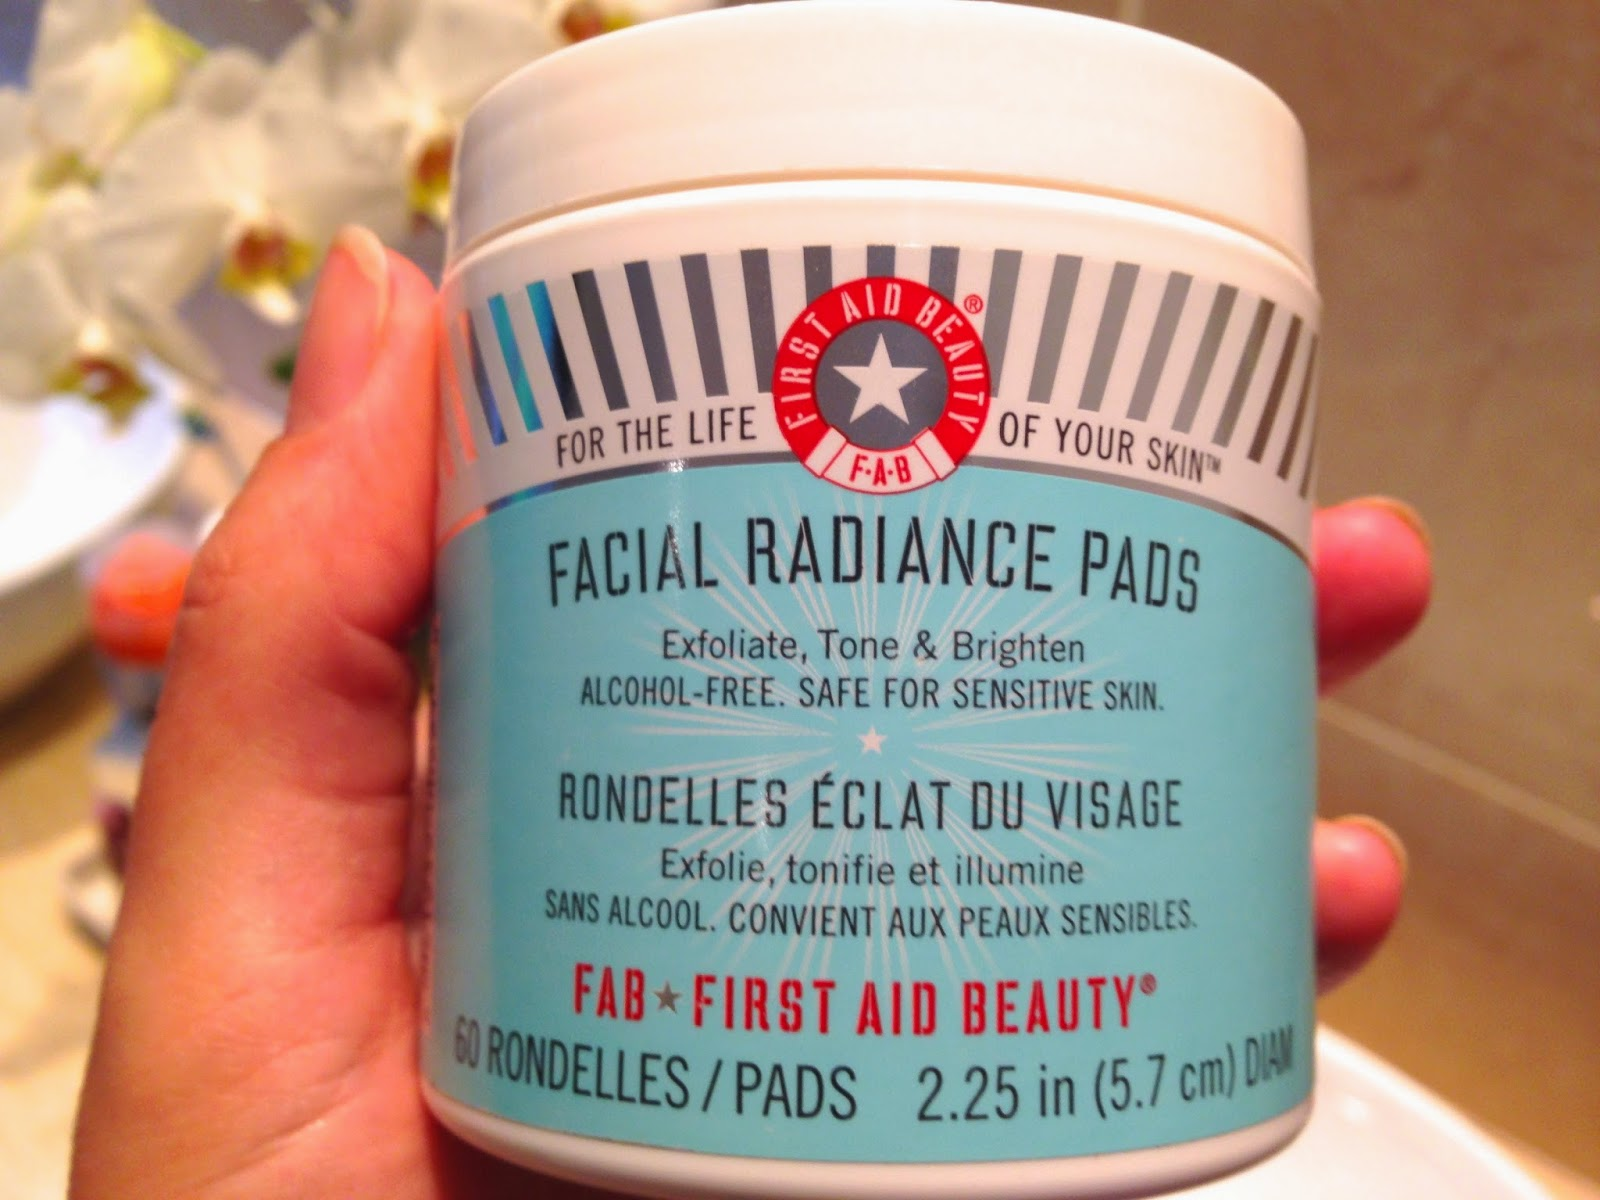 FAB-First-Aid-Beauty-Facial-Radiance-Pads-review